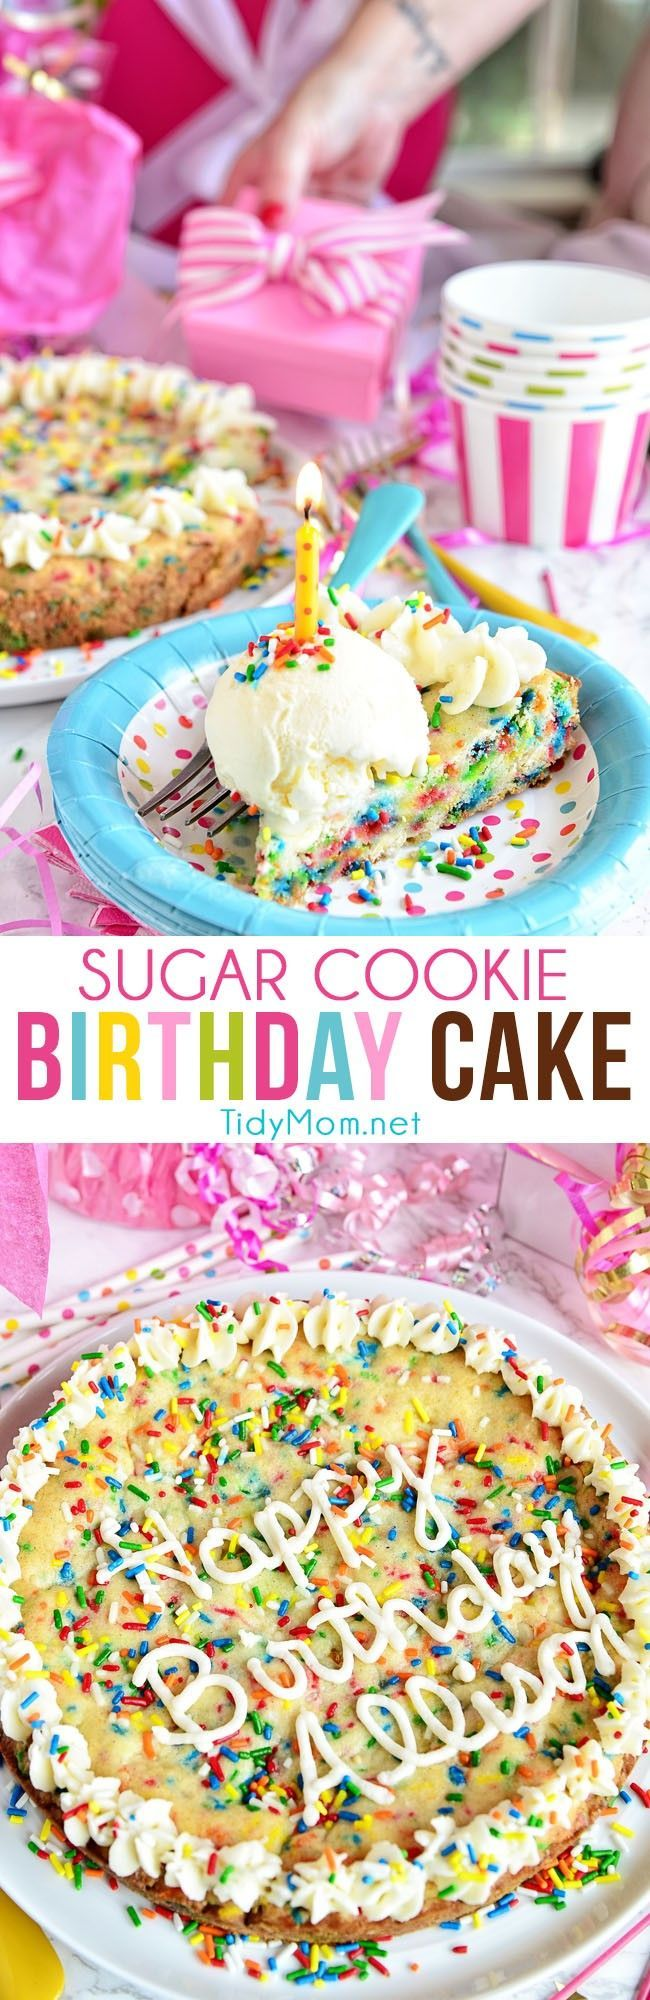 Do you love sprinkles in your birthday cake? This BIRTHDAY SUGAR COOKIE CAKE full of sprinkles! Funfetti lovers are going to flip for this homemade cookie cake.